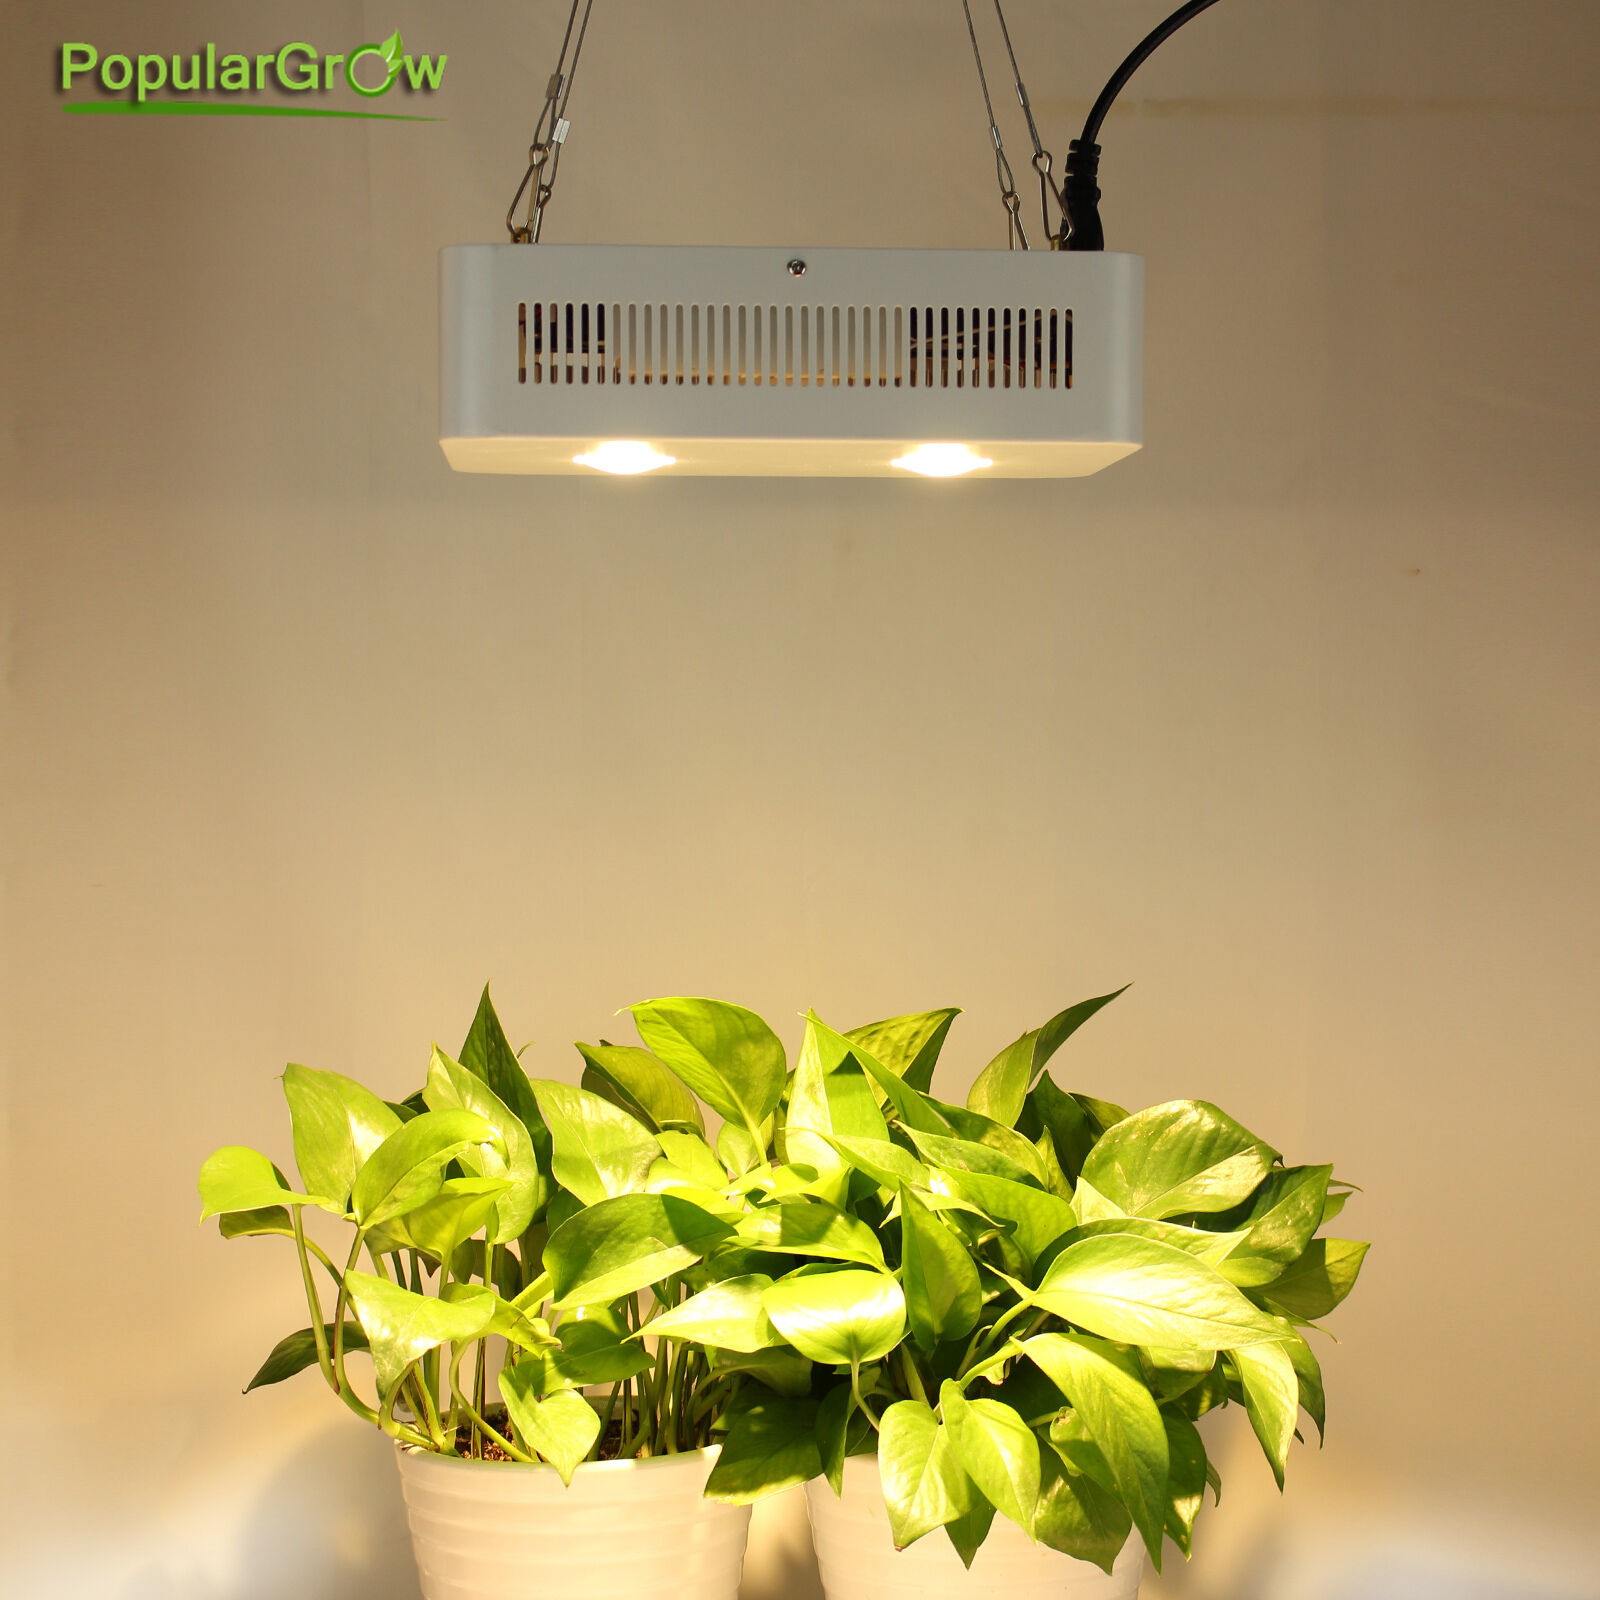 Populargrow cree 400wled grow light cob len for medical plant grow picture 1 of 7 arubaitofo Gallery